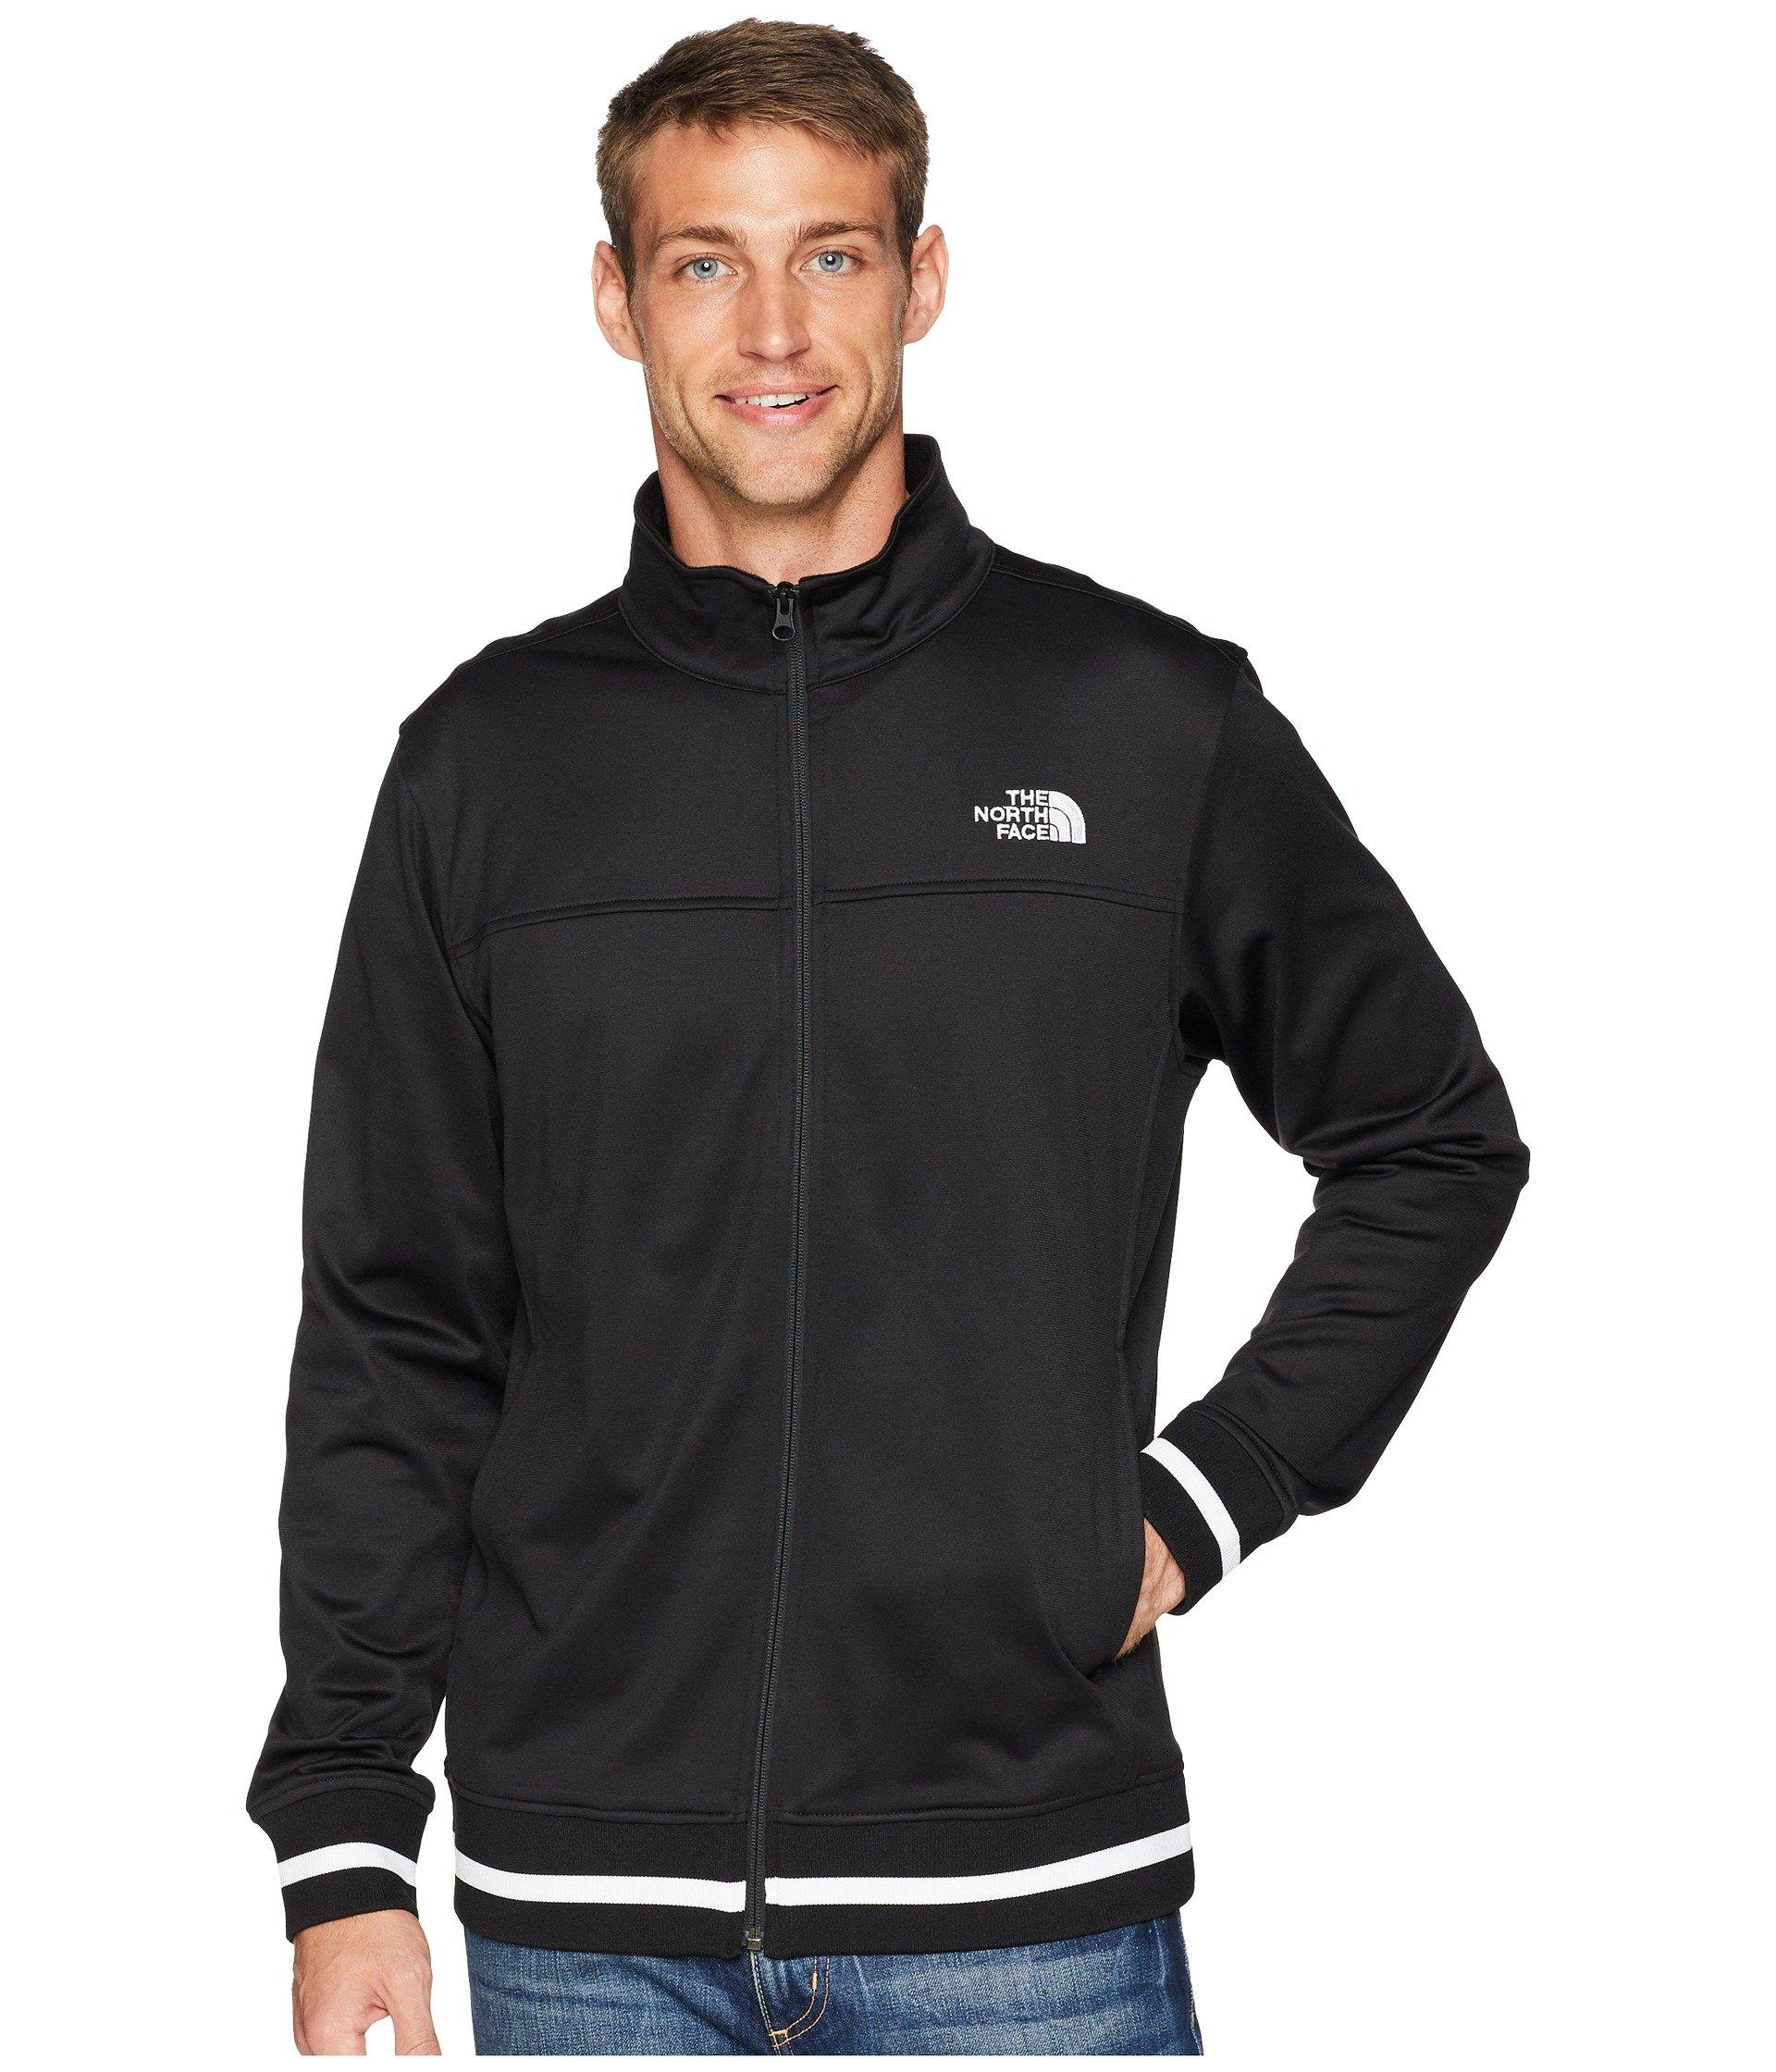 536a676202aa Lyst - The North Face Alphabet City Track Jacket in Black for Men ...